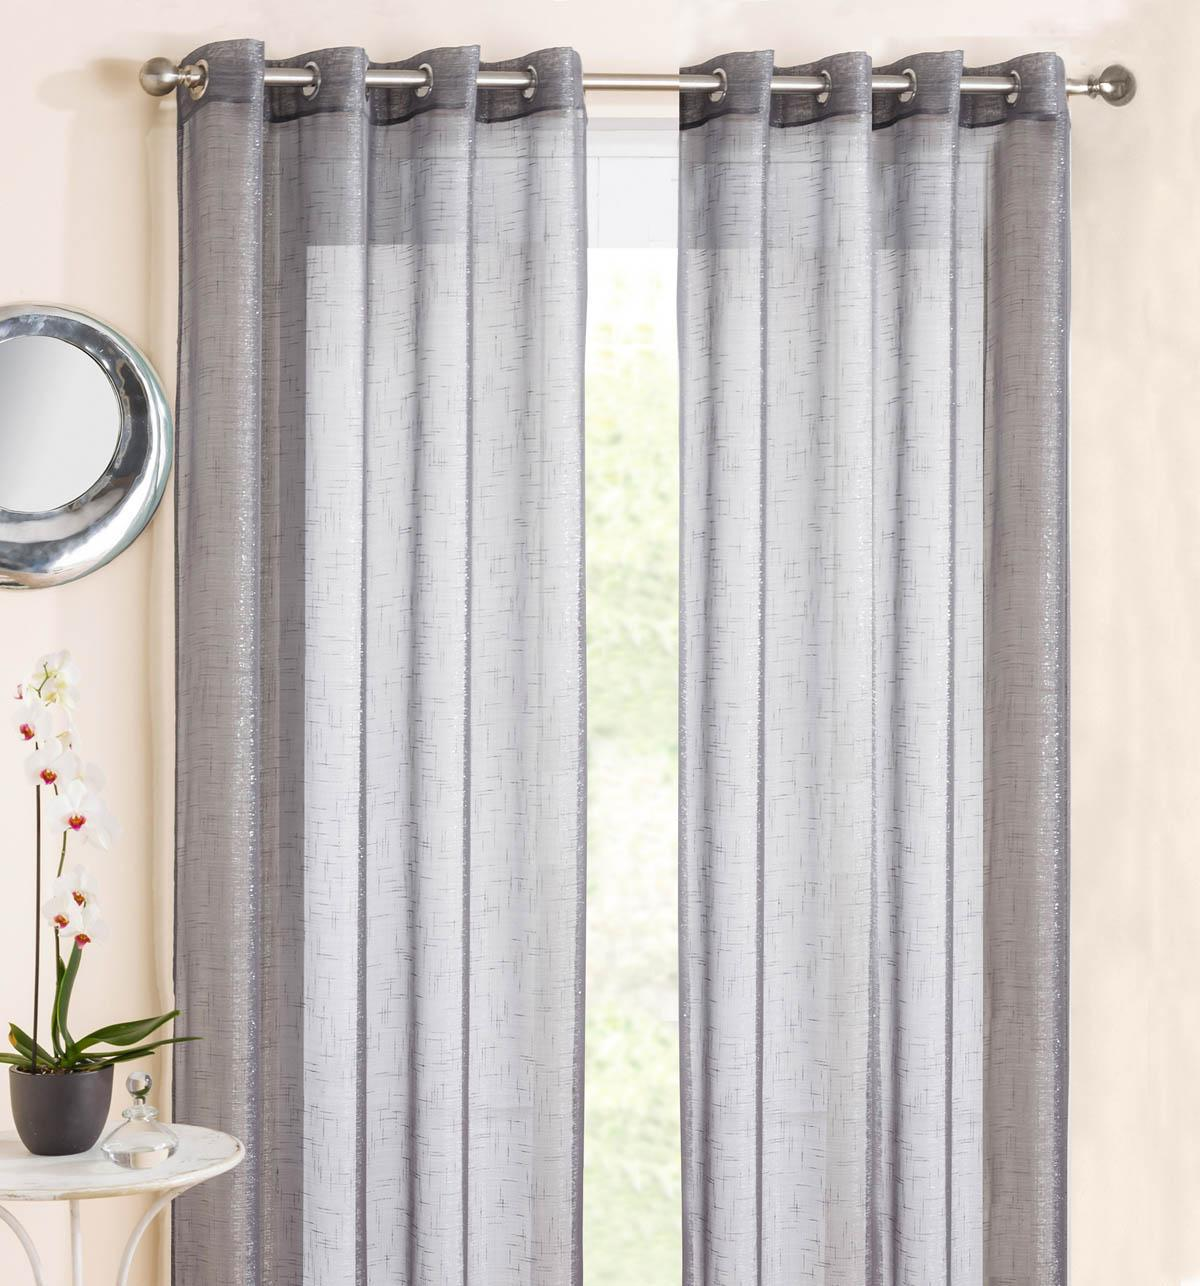 Tyrone Ready Made Curtains Marrakesh Eyelet Voile Panel Grey